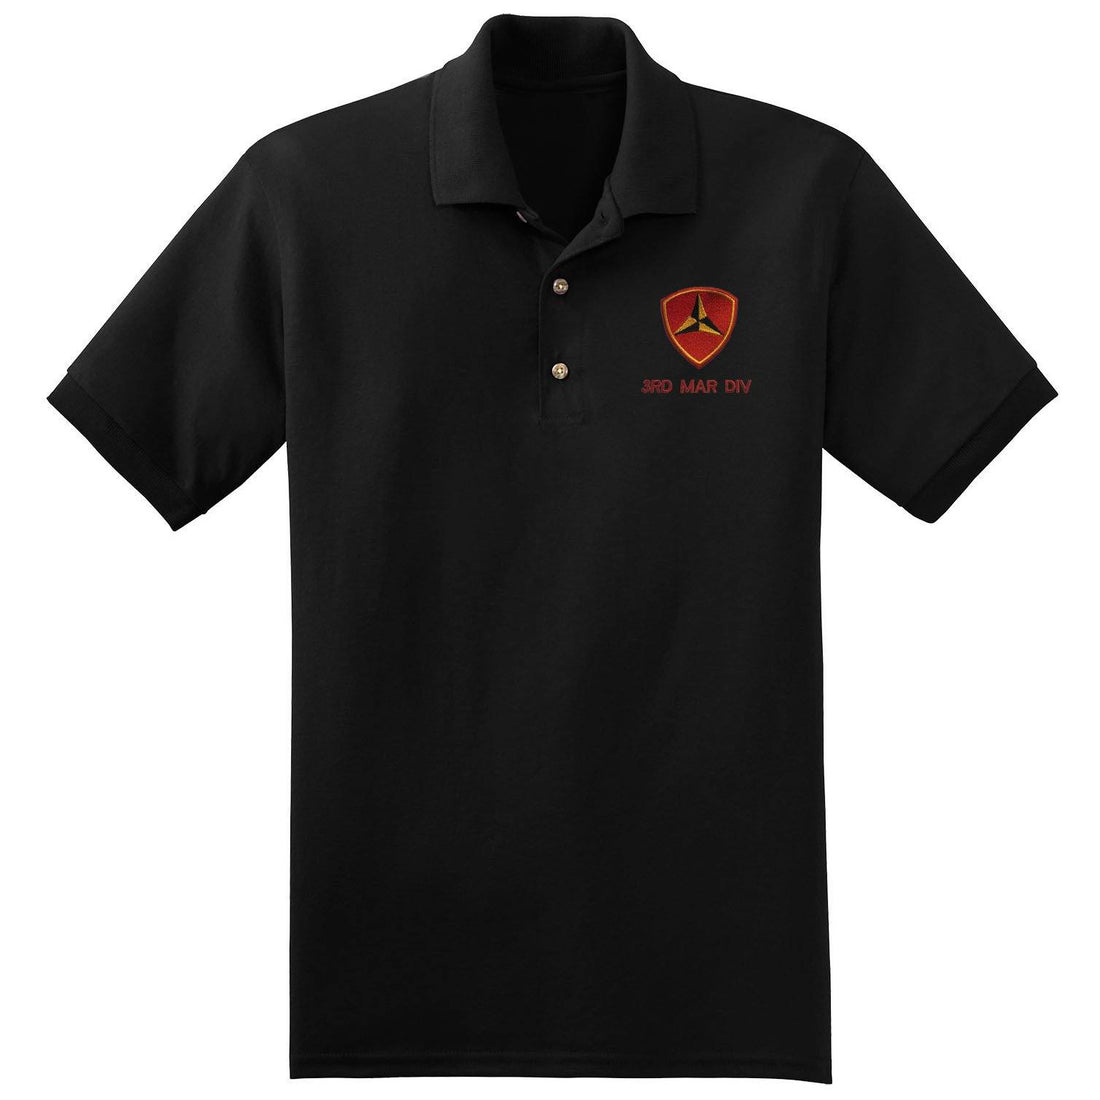 3rd Mar Div Embroidered Polo